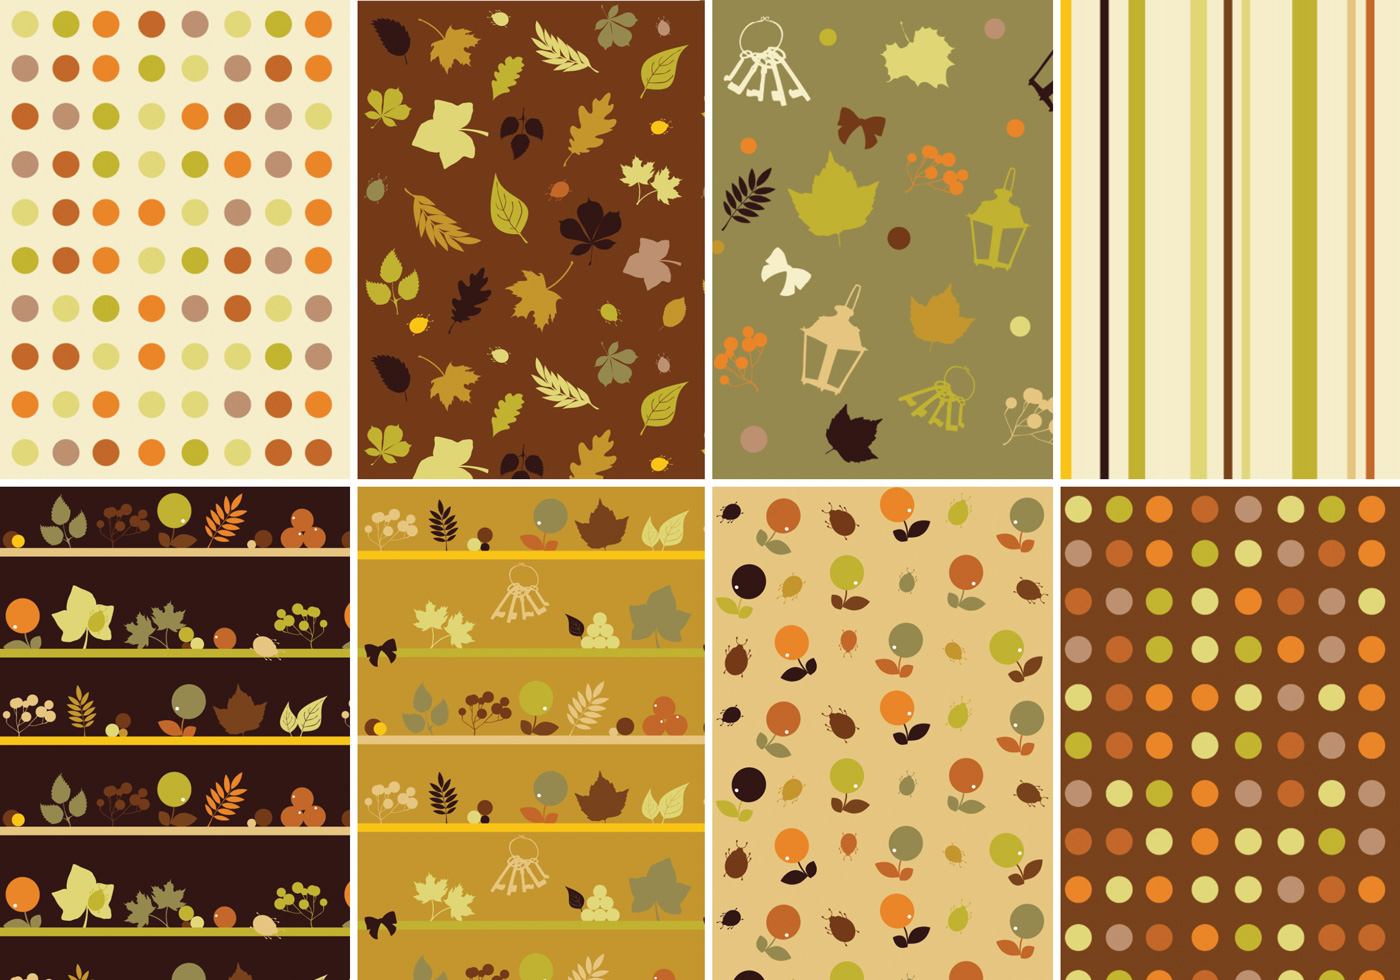 Maple Leaf Wallpaper For Fall Season Warm Fall Vector Pattern Pack Download Free Vectors